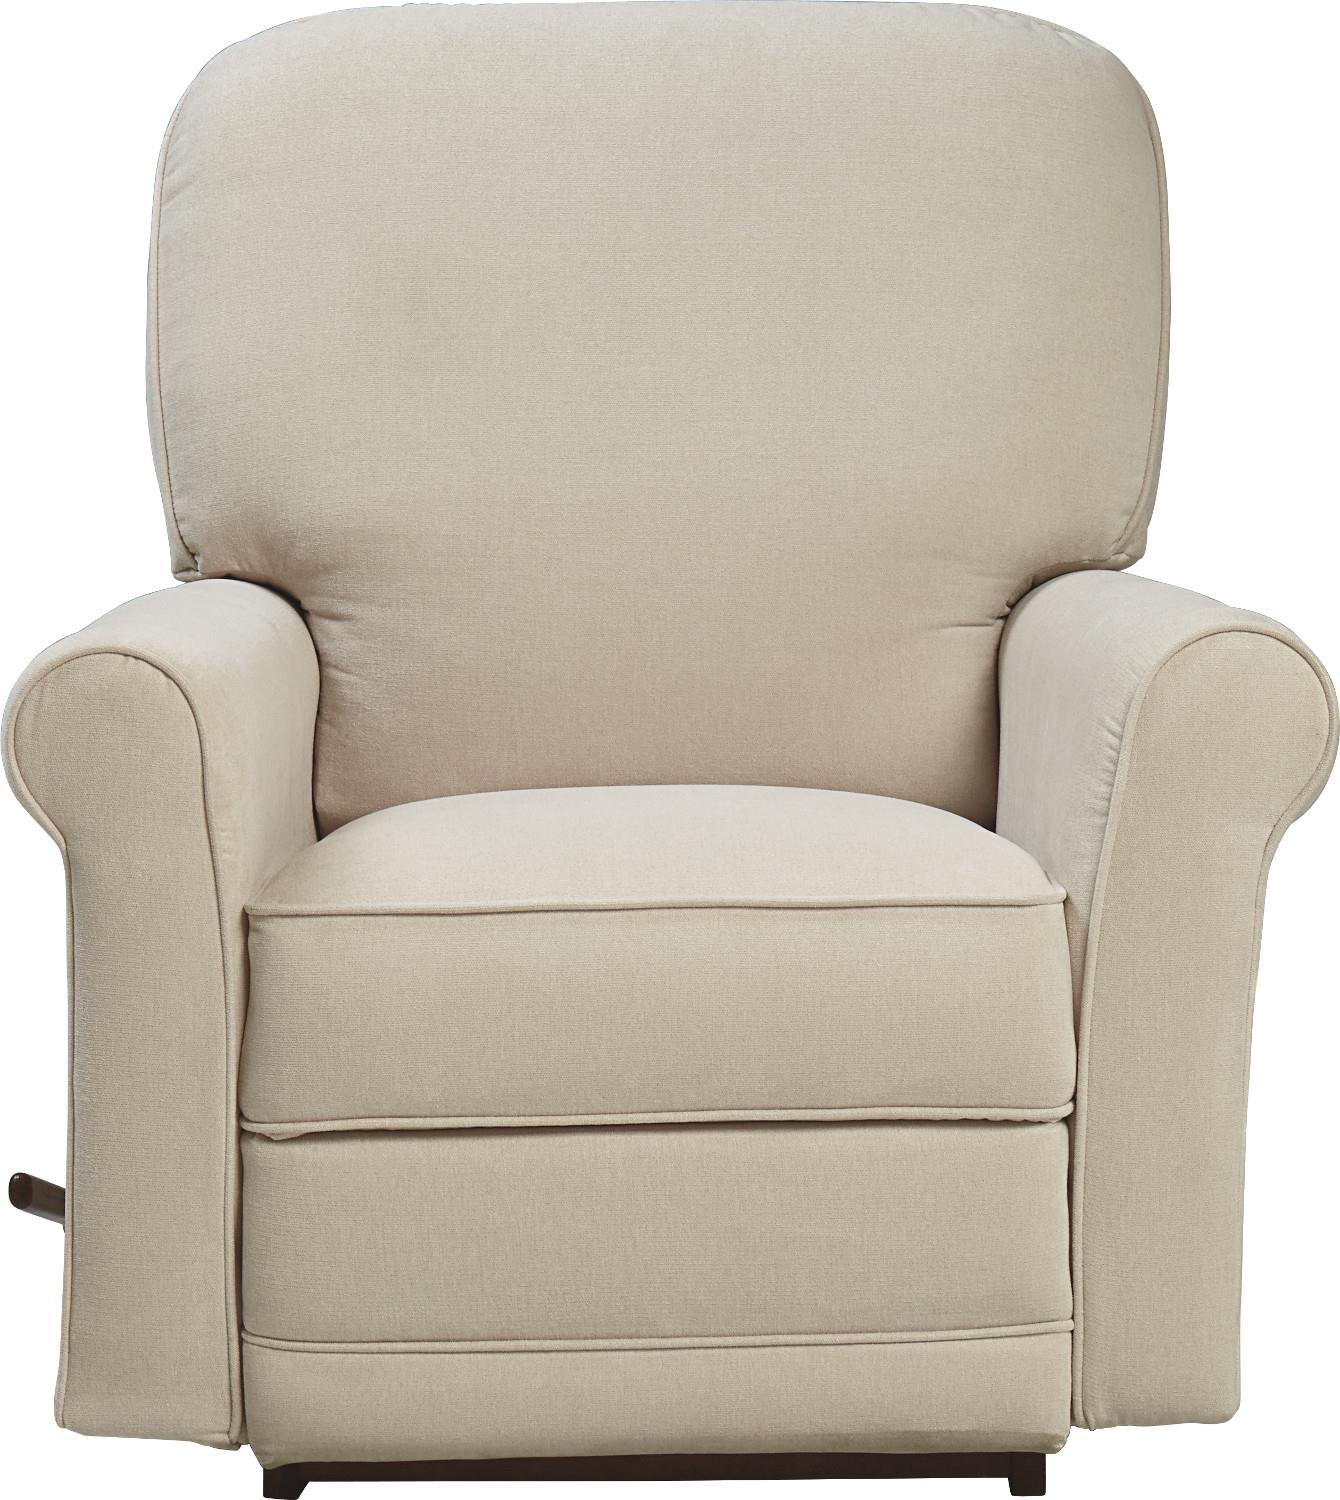 Addison RECLINA-ROCKER® Recliner by La-Z-Boy at Fisher Home Furnishings